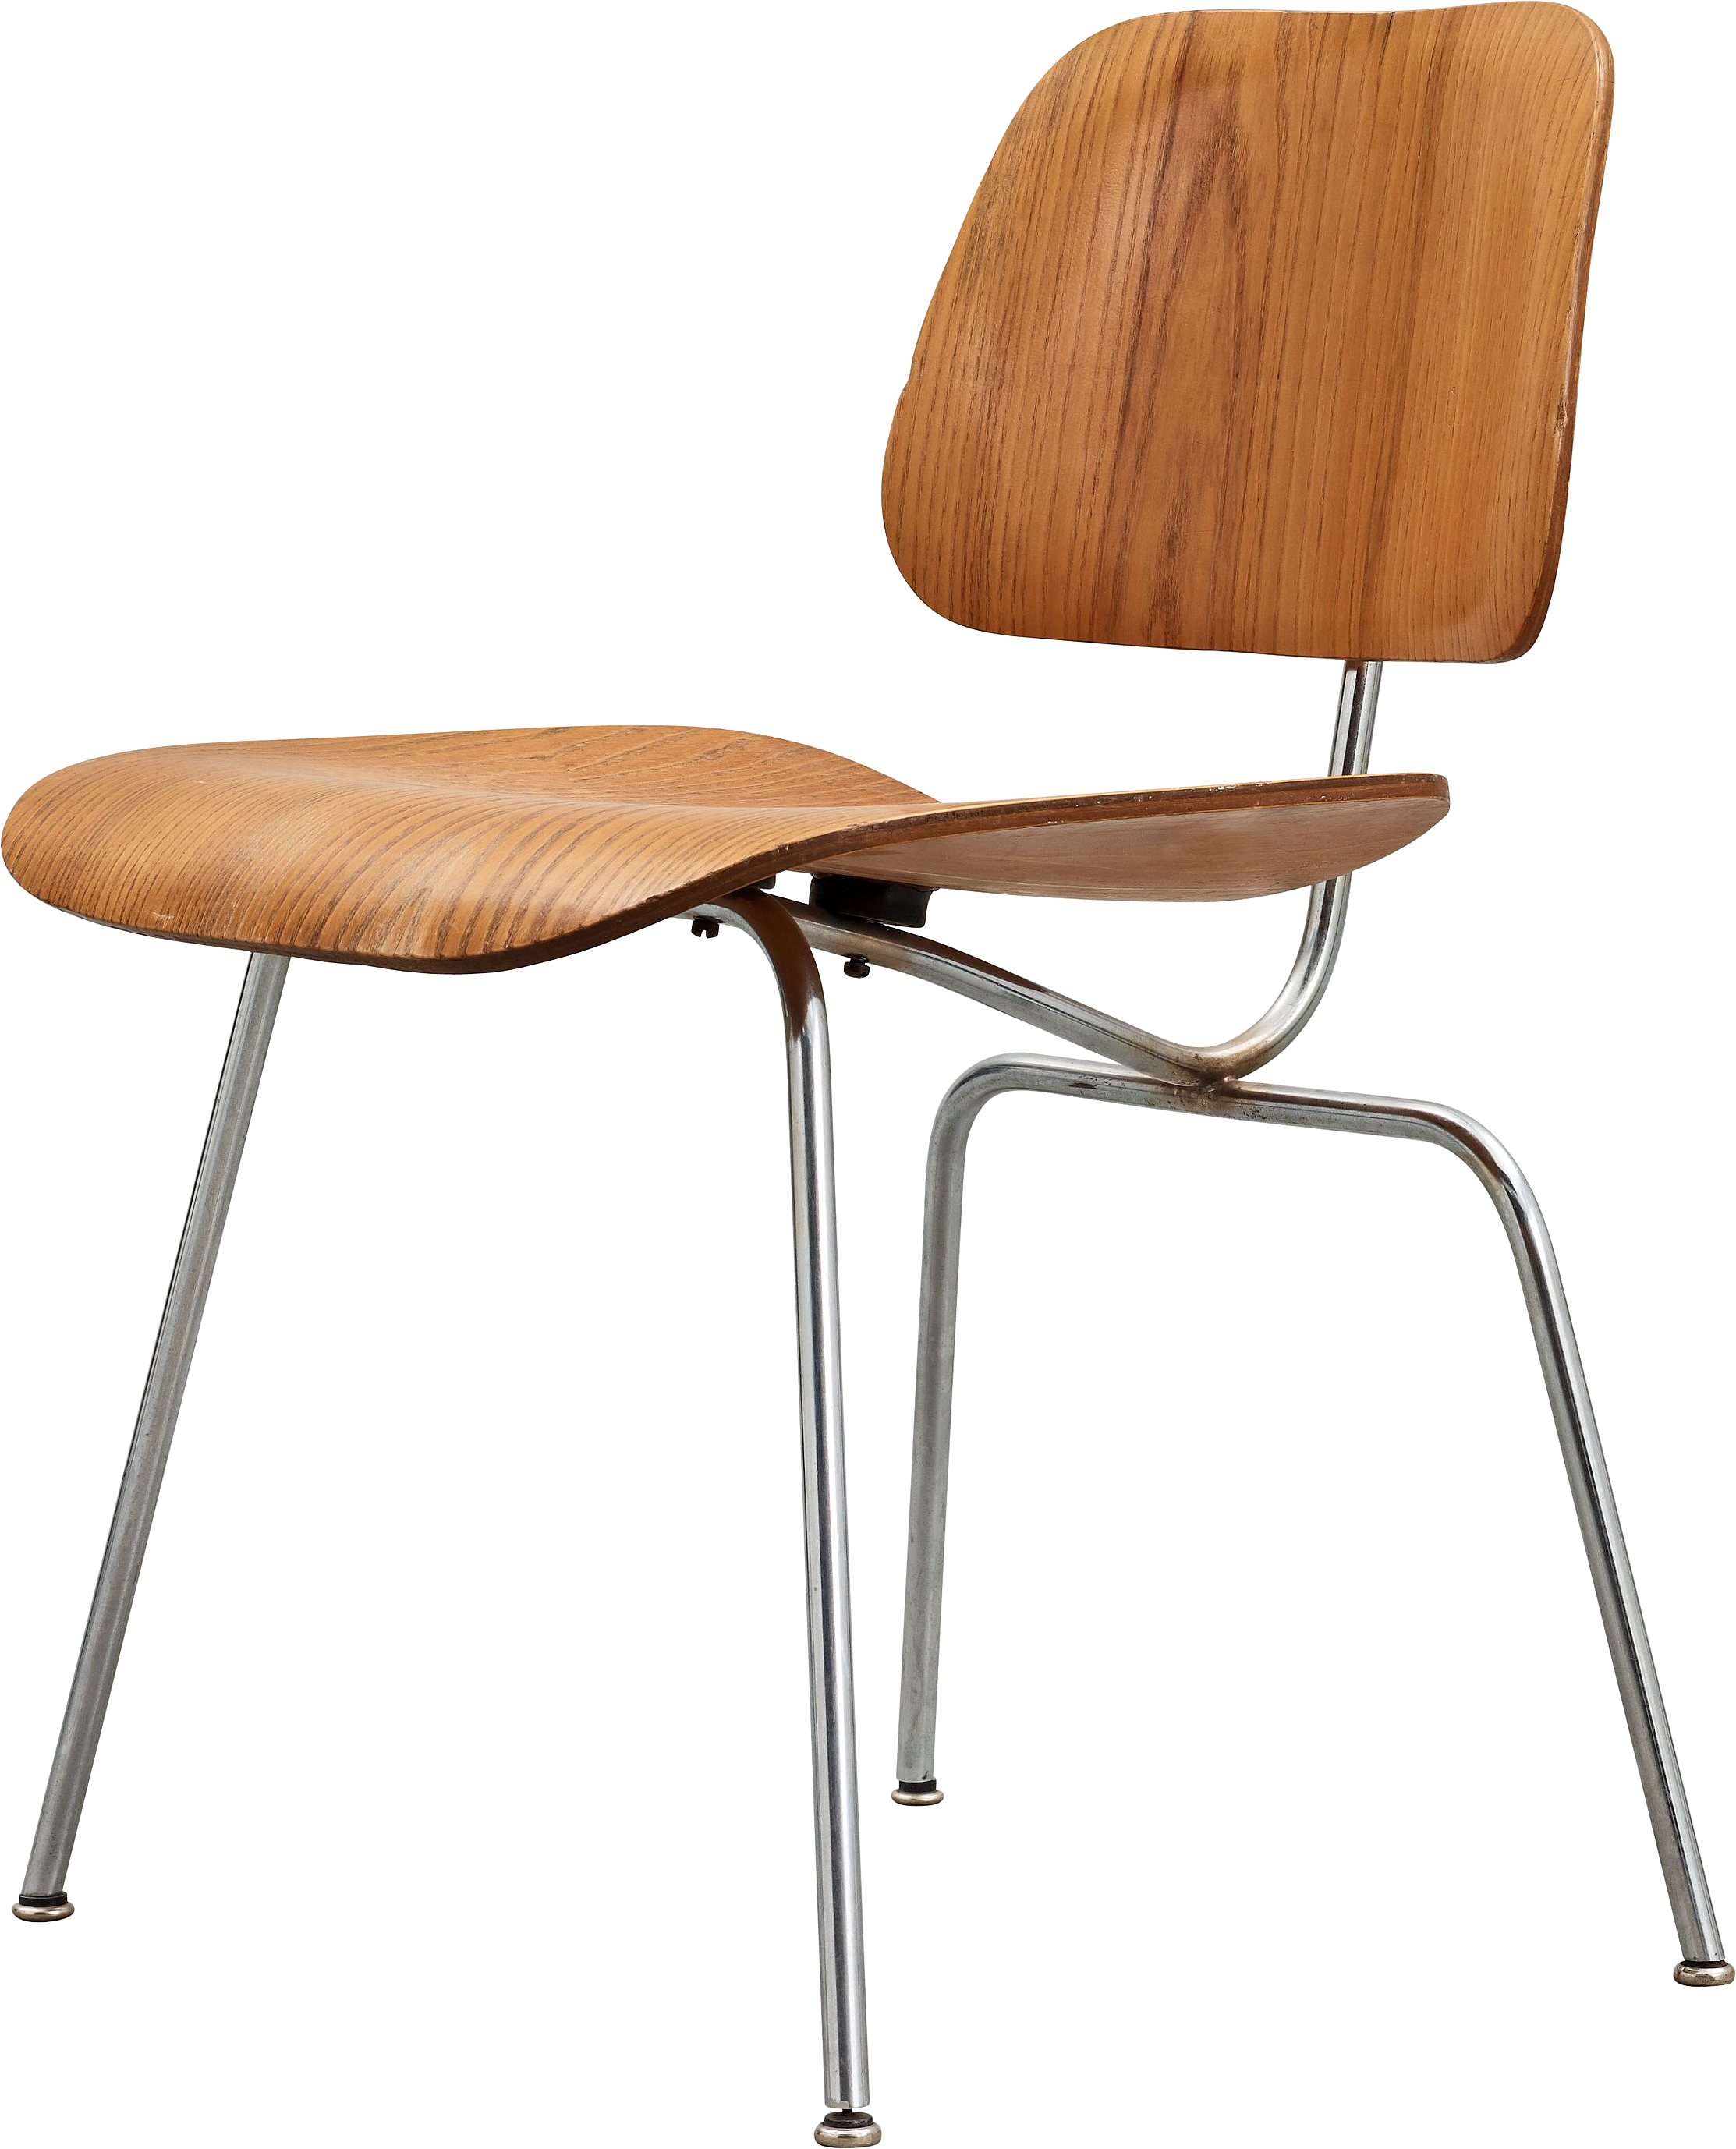 wooden chair png. chair png image wooden png